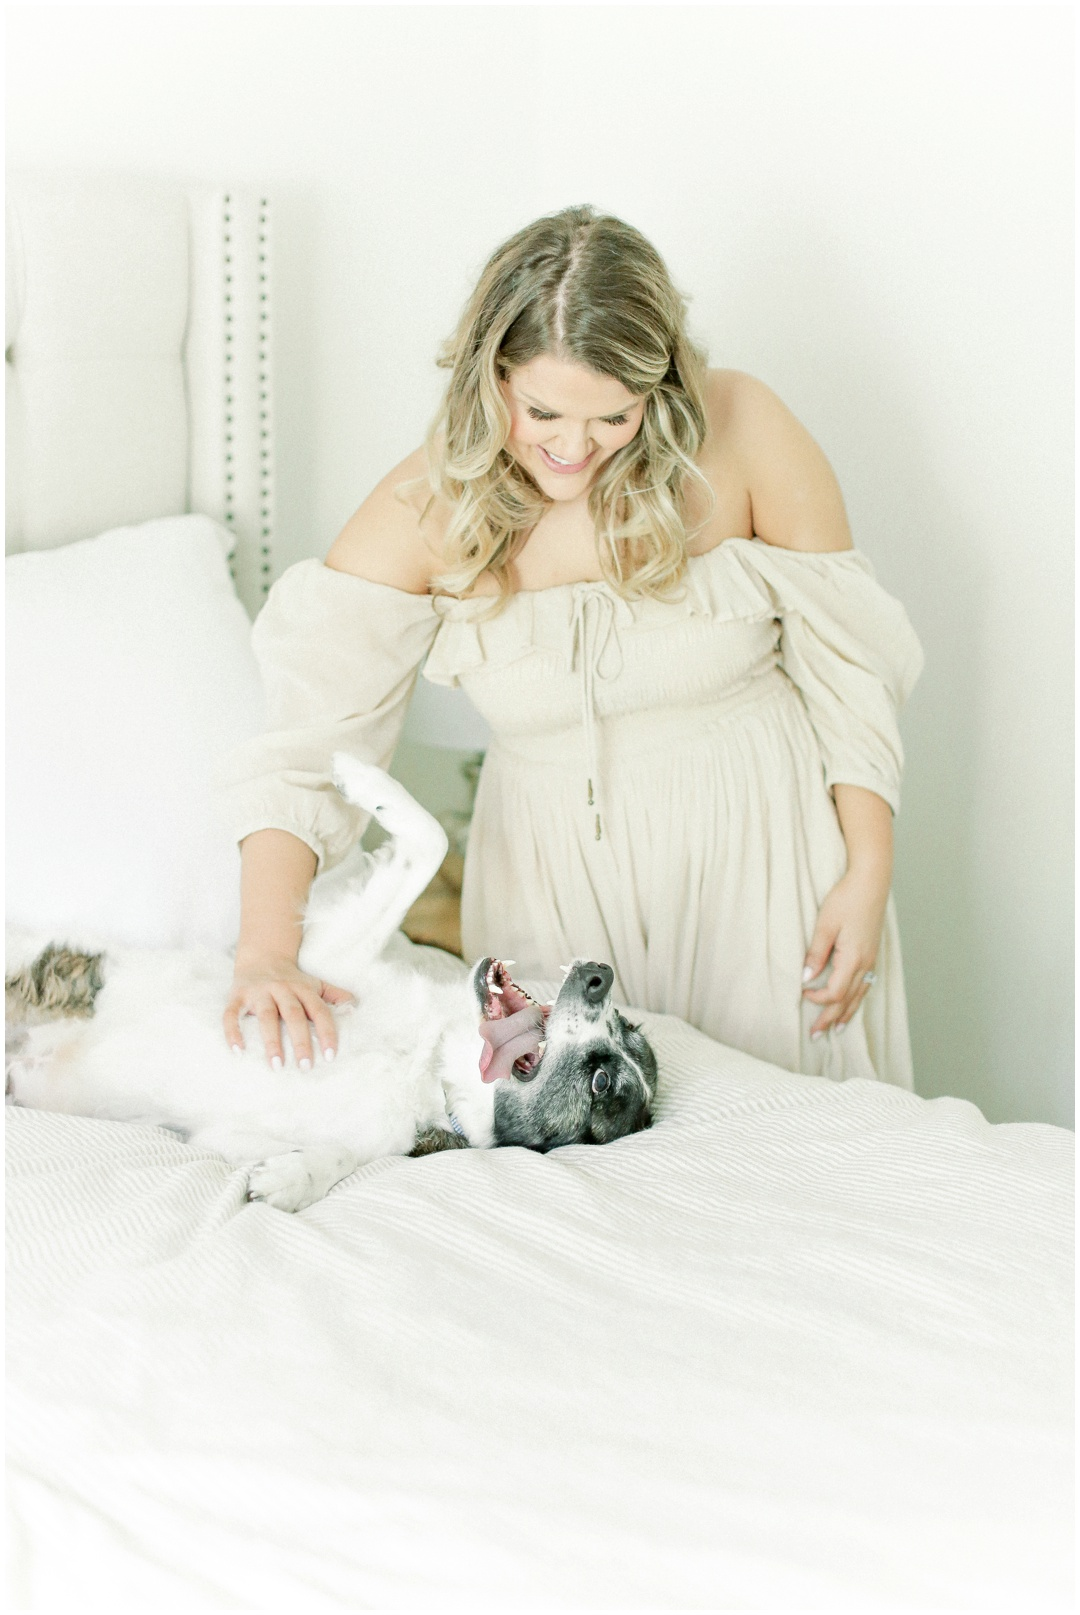 Newport_Beach_Newborn_Light_Airy_Natural_Photographer_Newport_Beach_In-Home_Photographer_Orange_County_Family_Photographer_Cori_Kleckner_Photography_Huntington_Beach_Photographer_Family_OC_Newborn_Meghan_Sullivan_Newborn_Family_Greer_Sullivan_3256.jpg